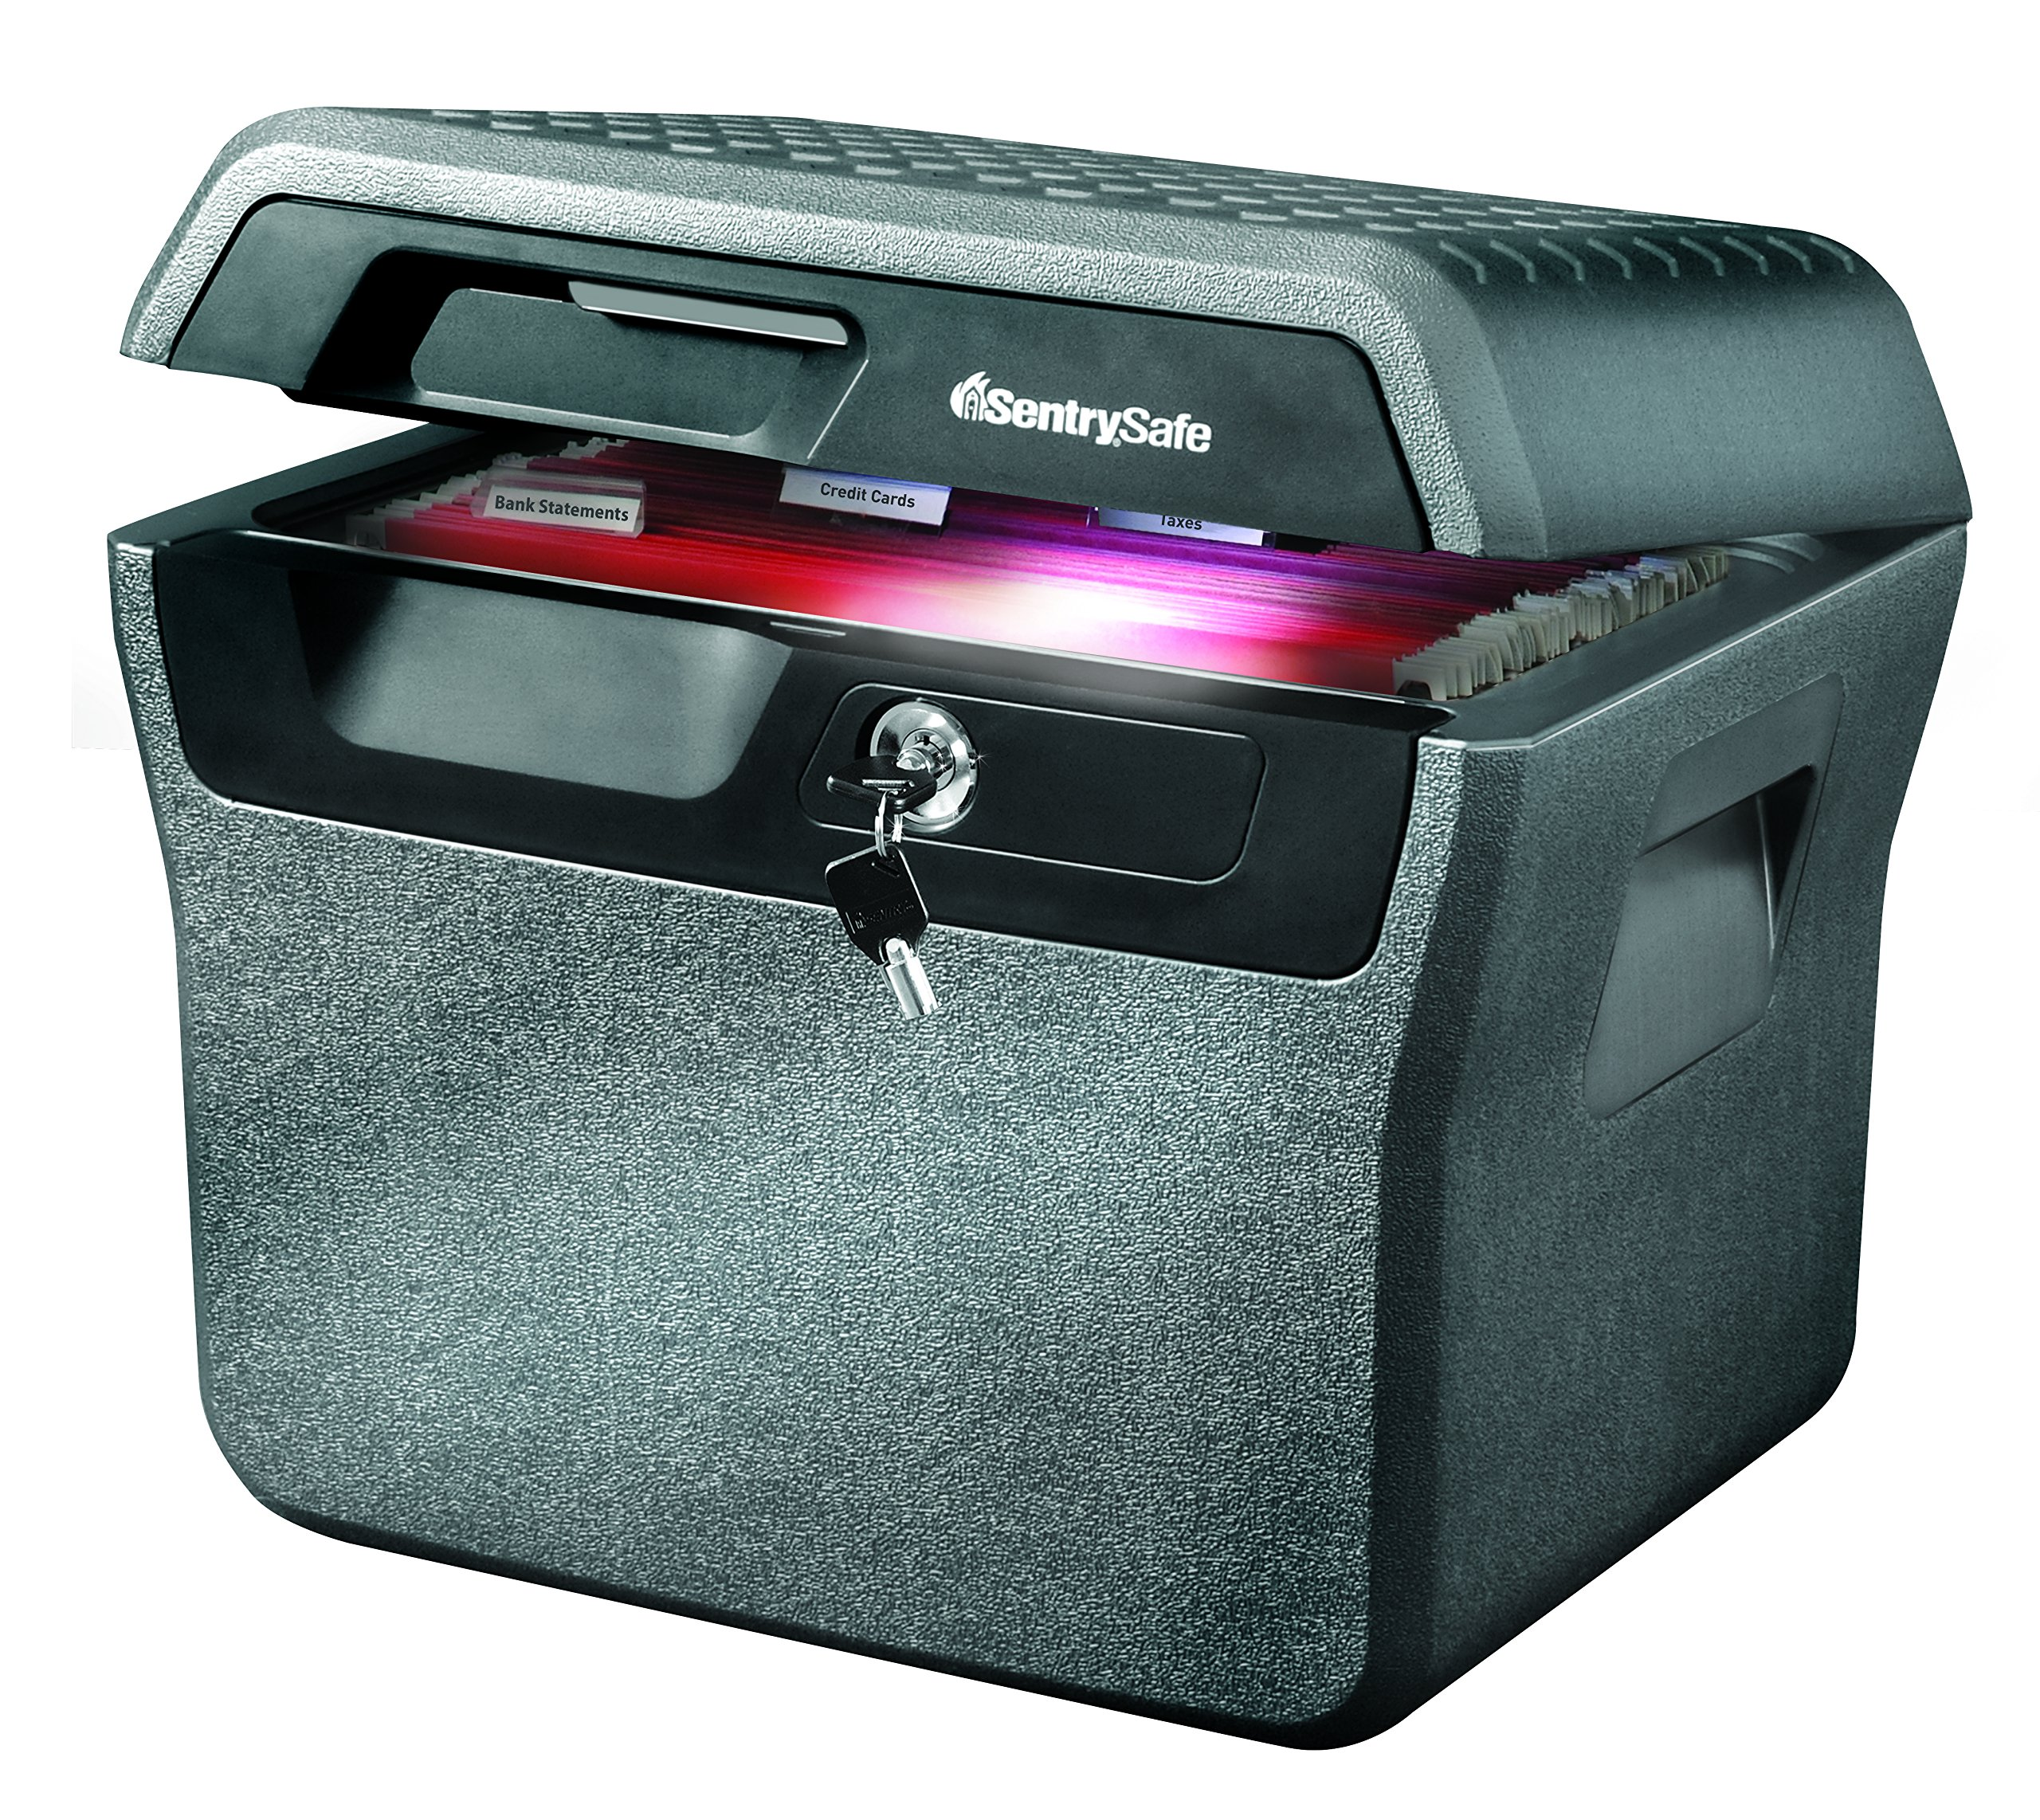 SentrySafe Fire and Water Safe, Fire and Water Resistant File Safe with Interior LED Light, 0.66 Cubic Feet, FHW40202